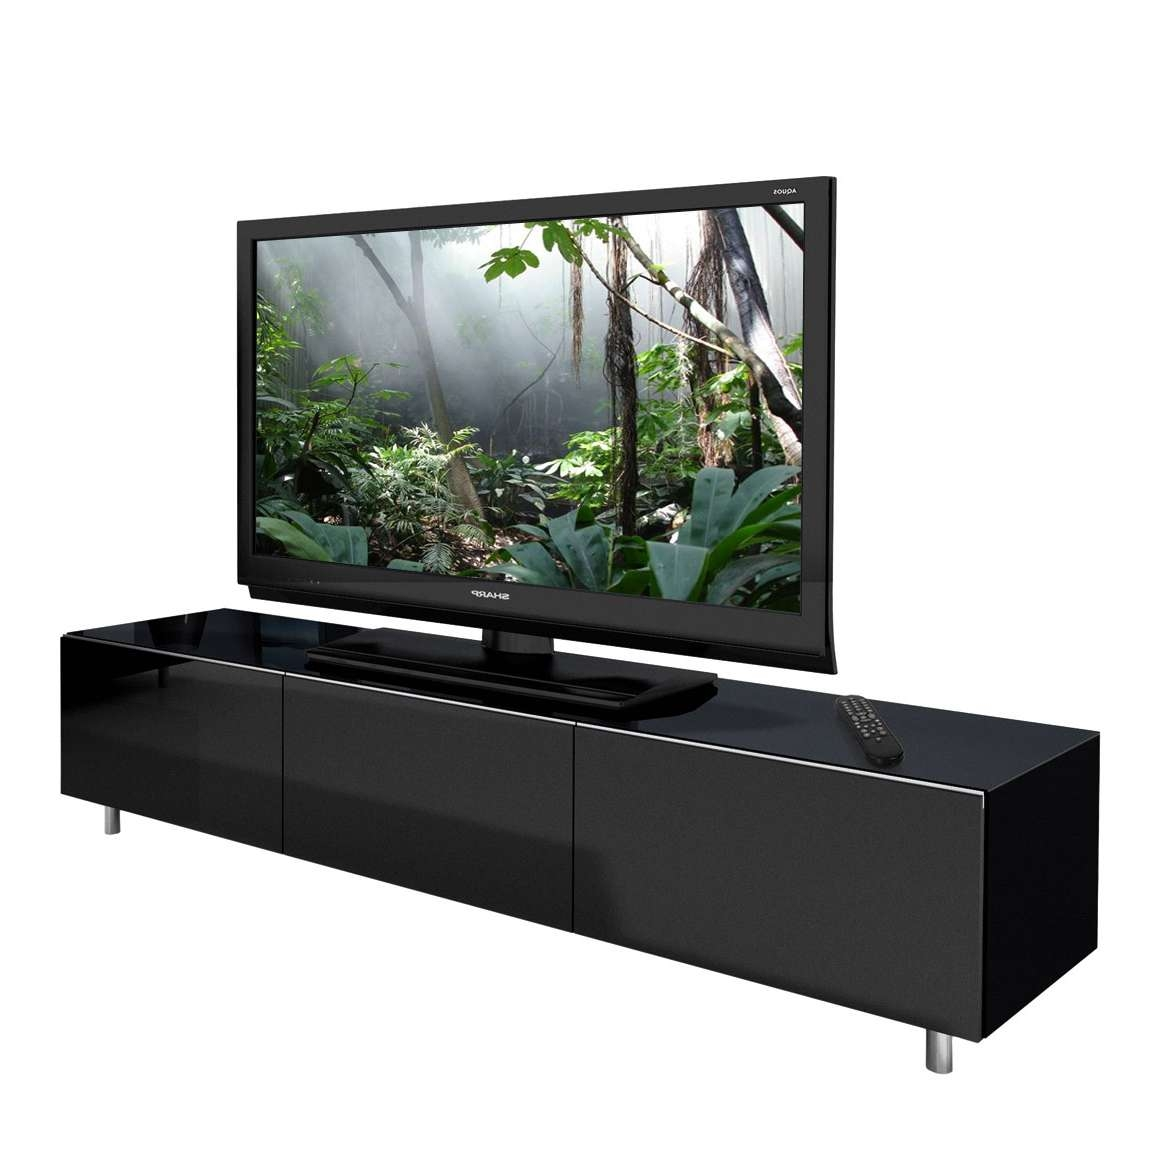 Spectral Just Racks Jrl1650S Gloss Black Tv Cabinet – Just Racks In Long Black Tv Stands (View 12 of 15)